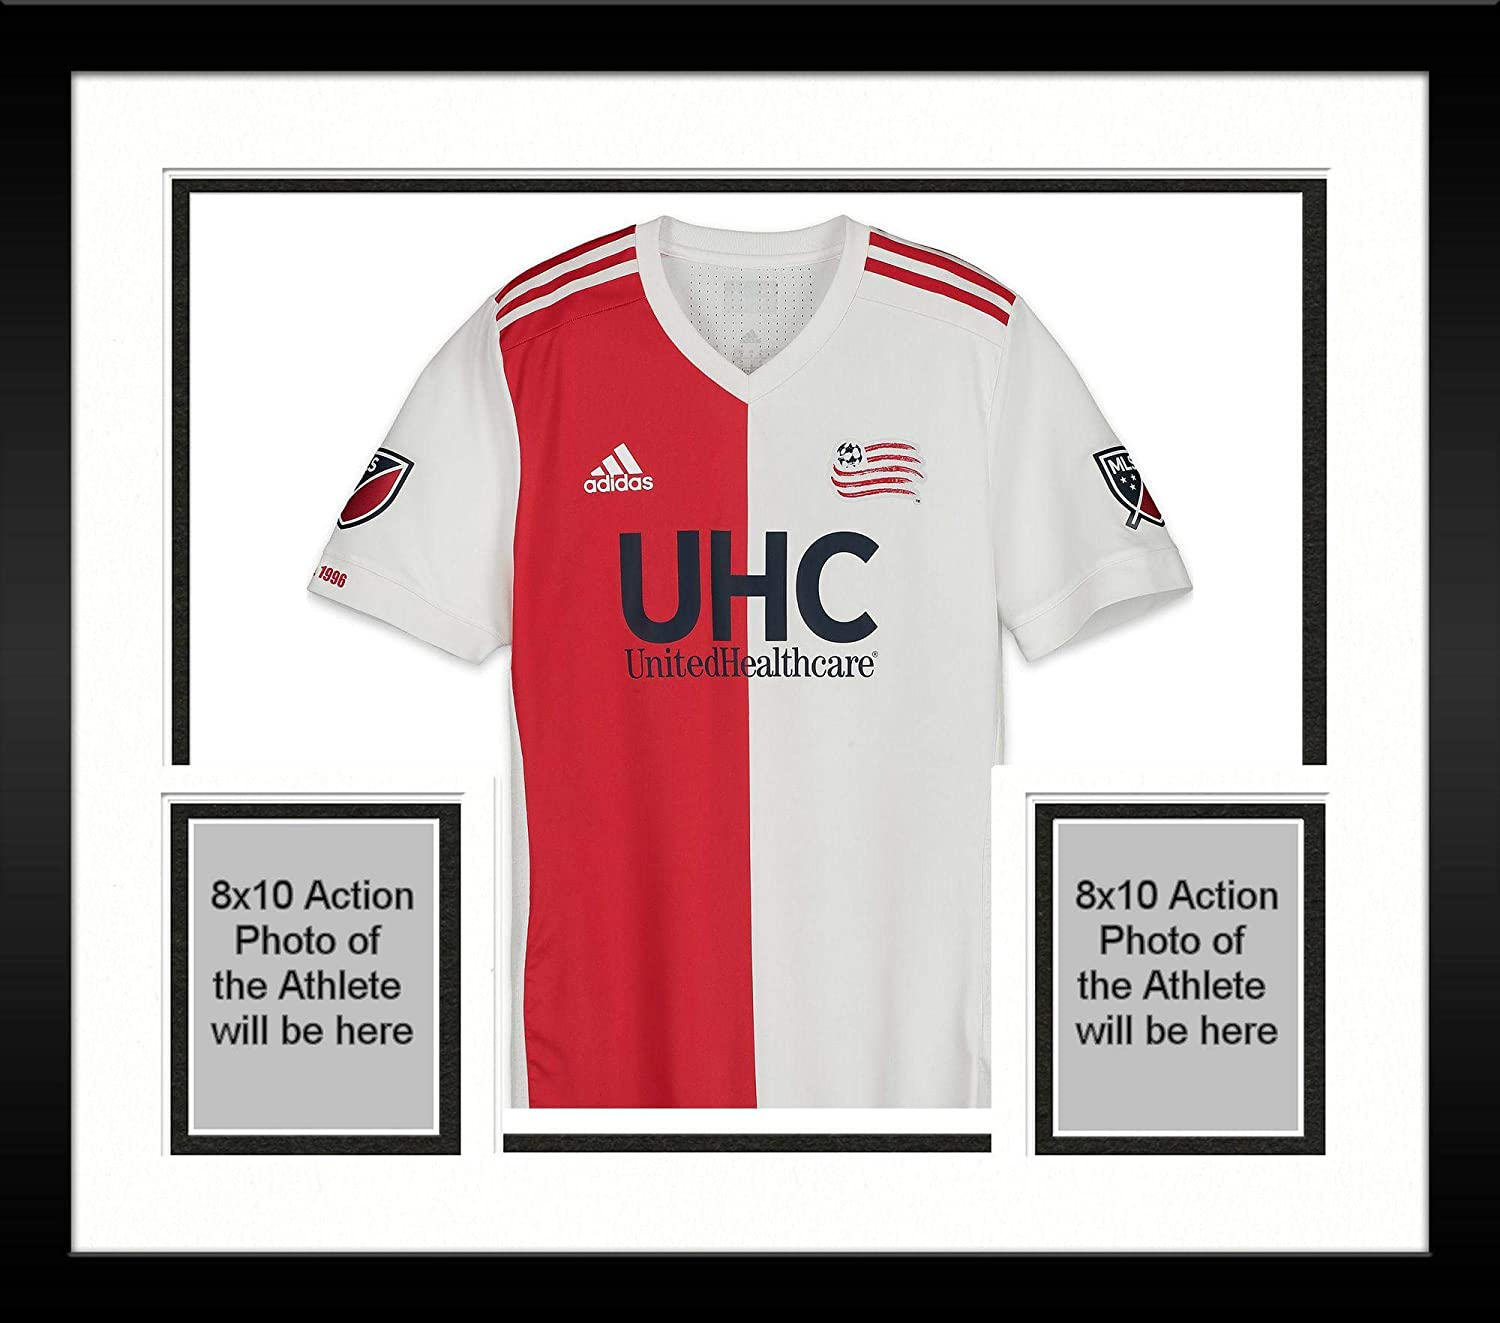 f264b18c3 Framed Scott Caldwell New England Revolution Autographed Match-Used White  6  Jersey vs. LAFC on September 15